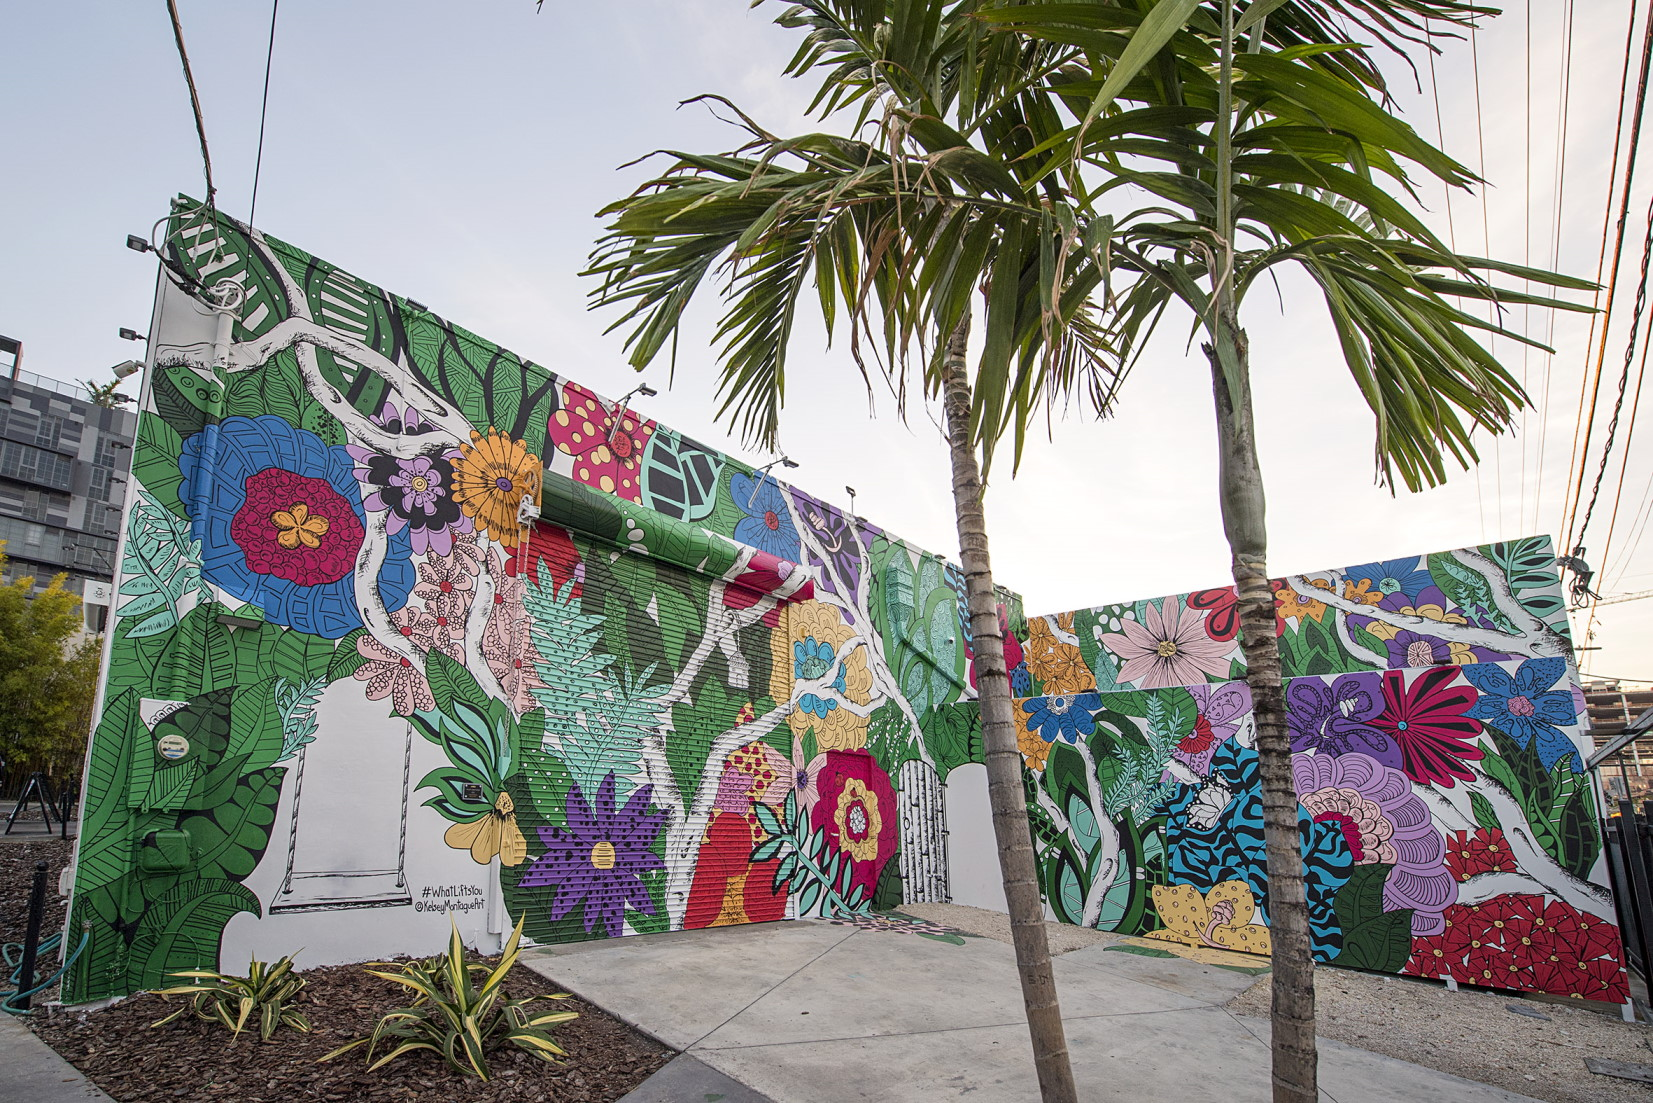 Kelsey Montague at the Wynwood Walls